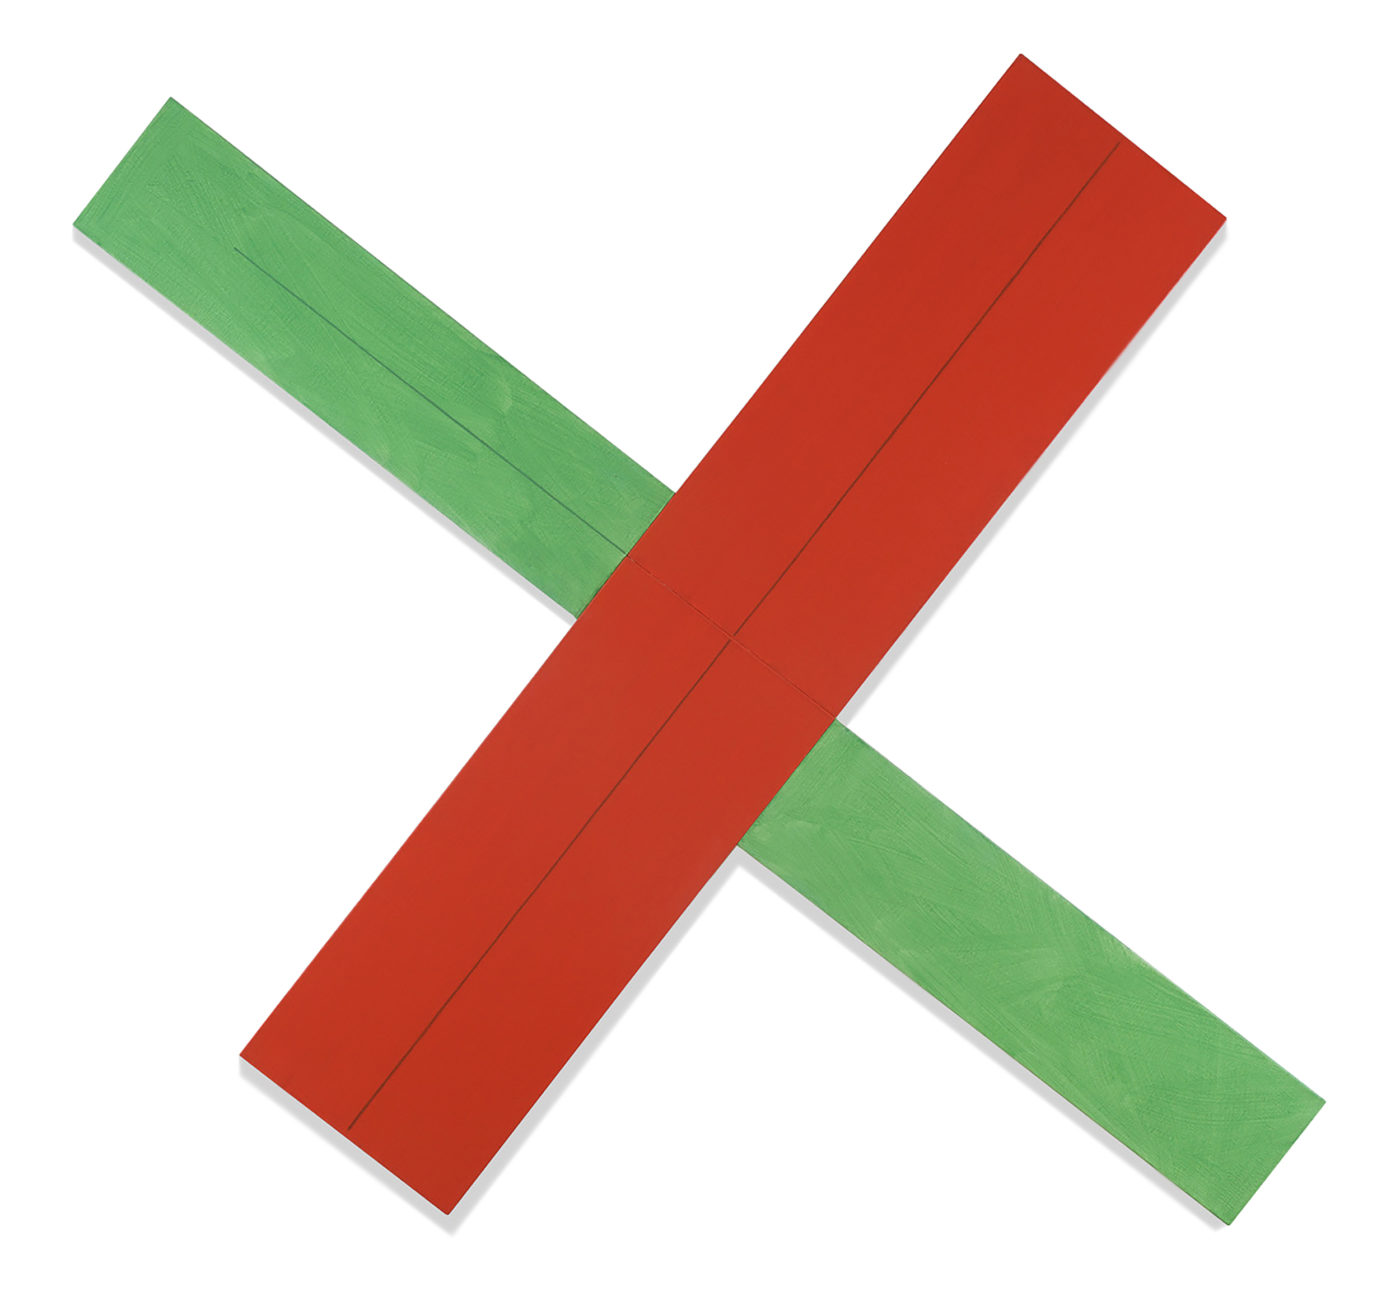 Robert Mangold painting titled Red green x within x #2, from year 1982